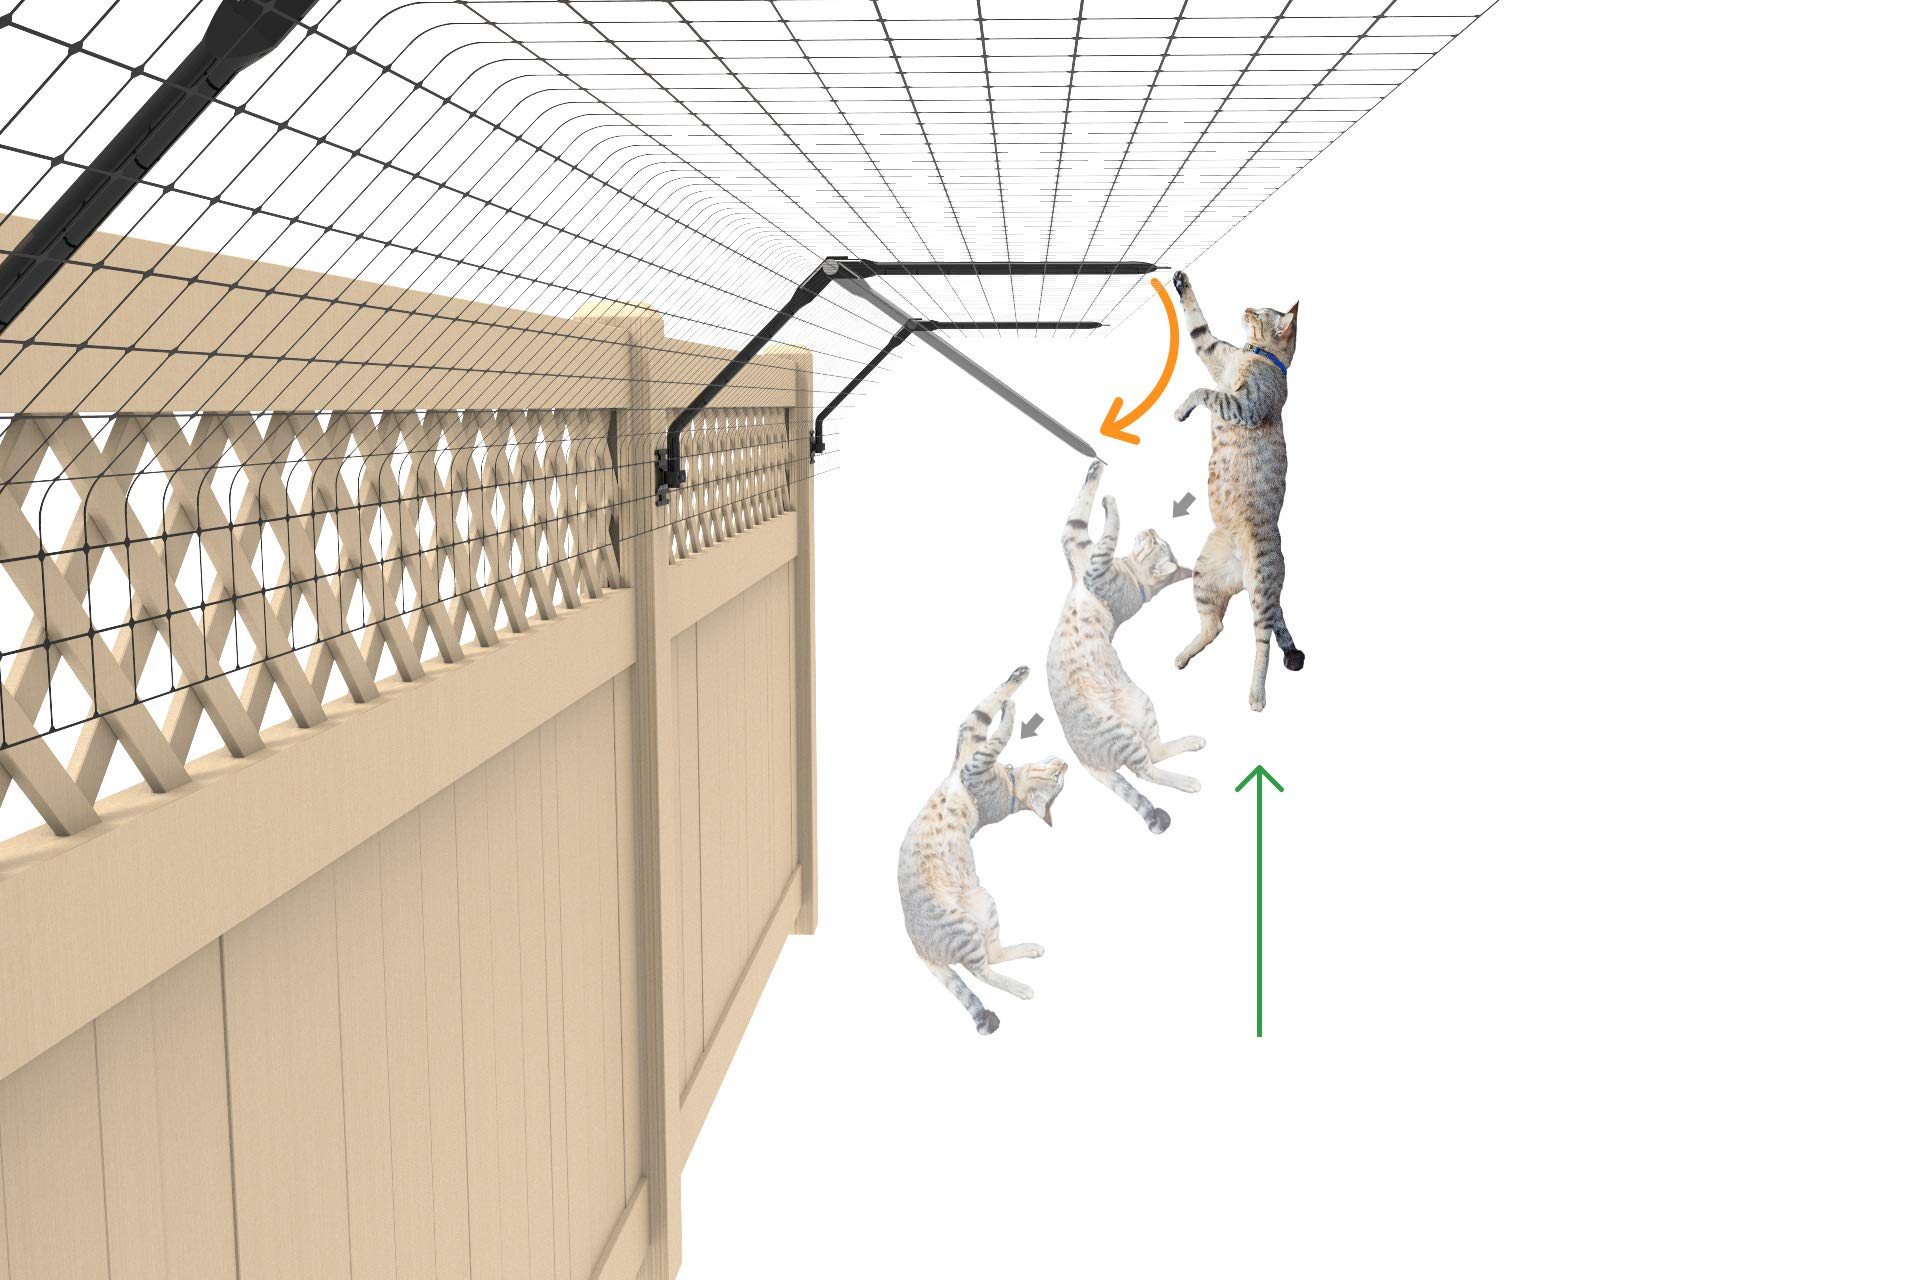 Purrfect Fence Existing Fence Conversion System - Cat Proof Fence Topper (50 Feet Kit, for Fences 5 Feet or Taller) by PURR...FECT FENCE